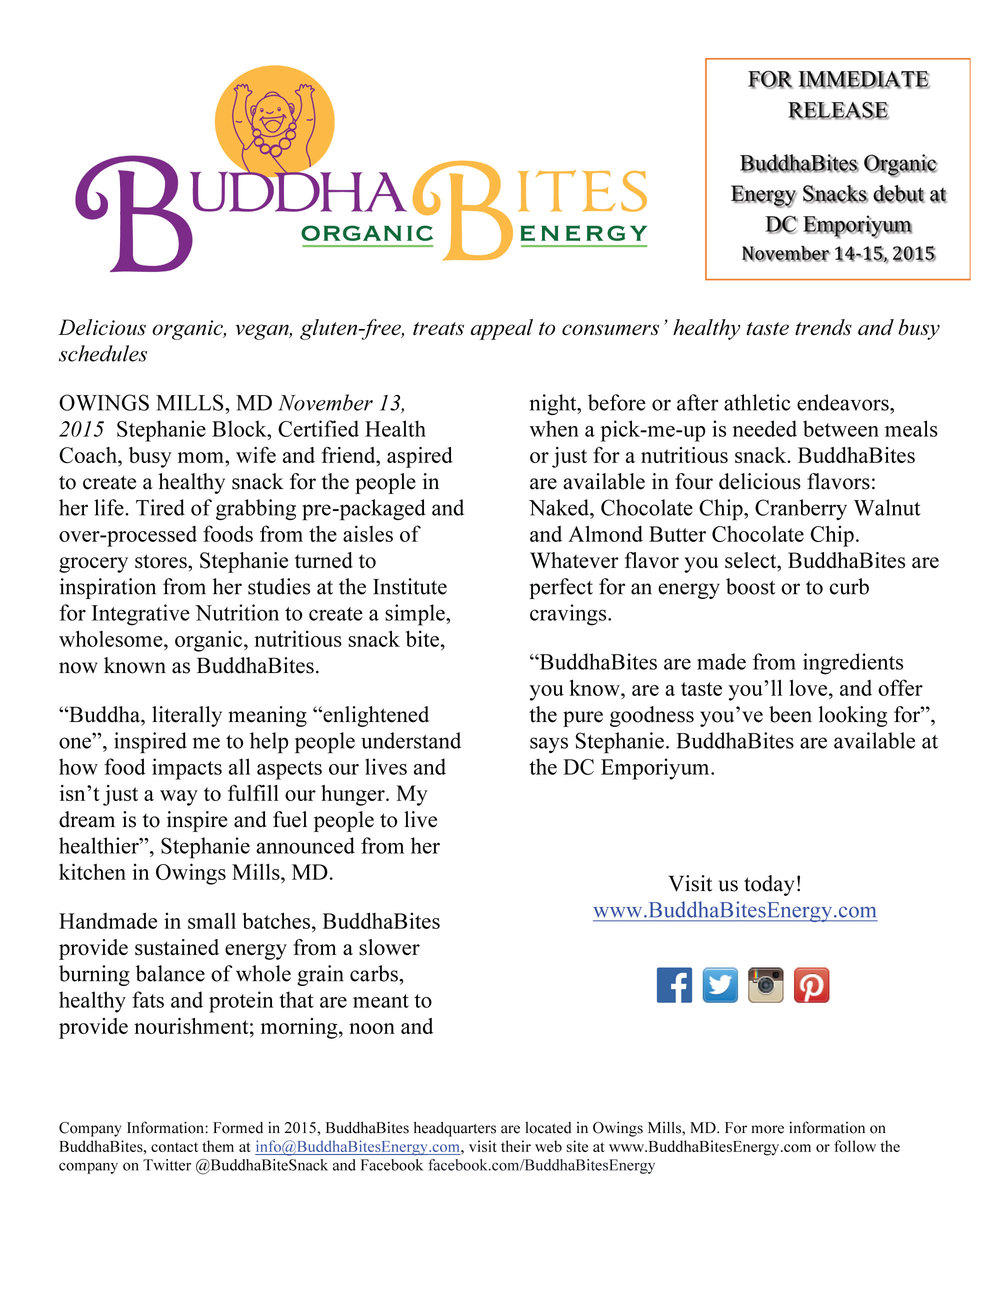 Buddhabites Press Release Nov 2015 Click The Image For A Pdf Version Here To Download